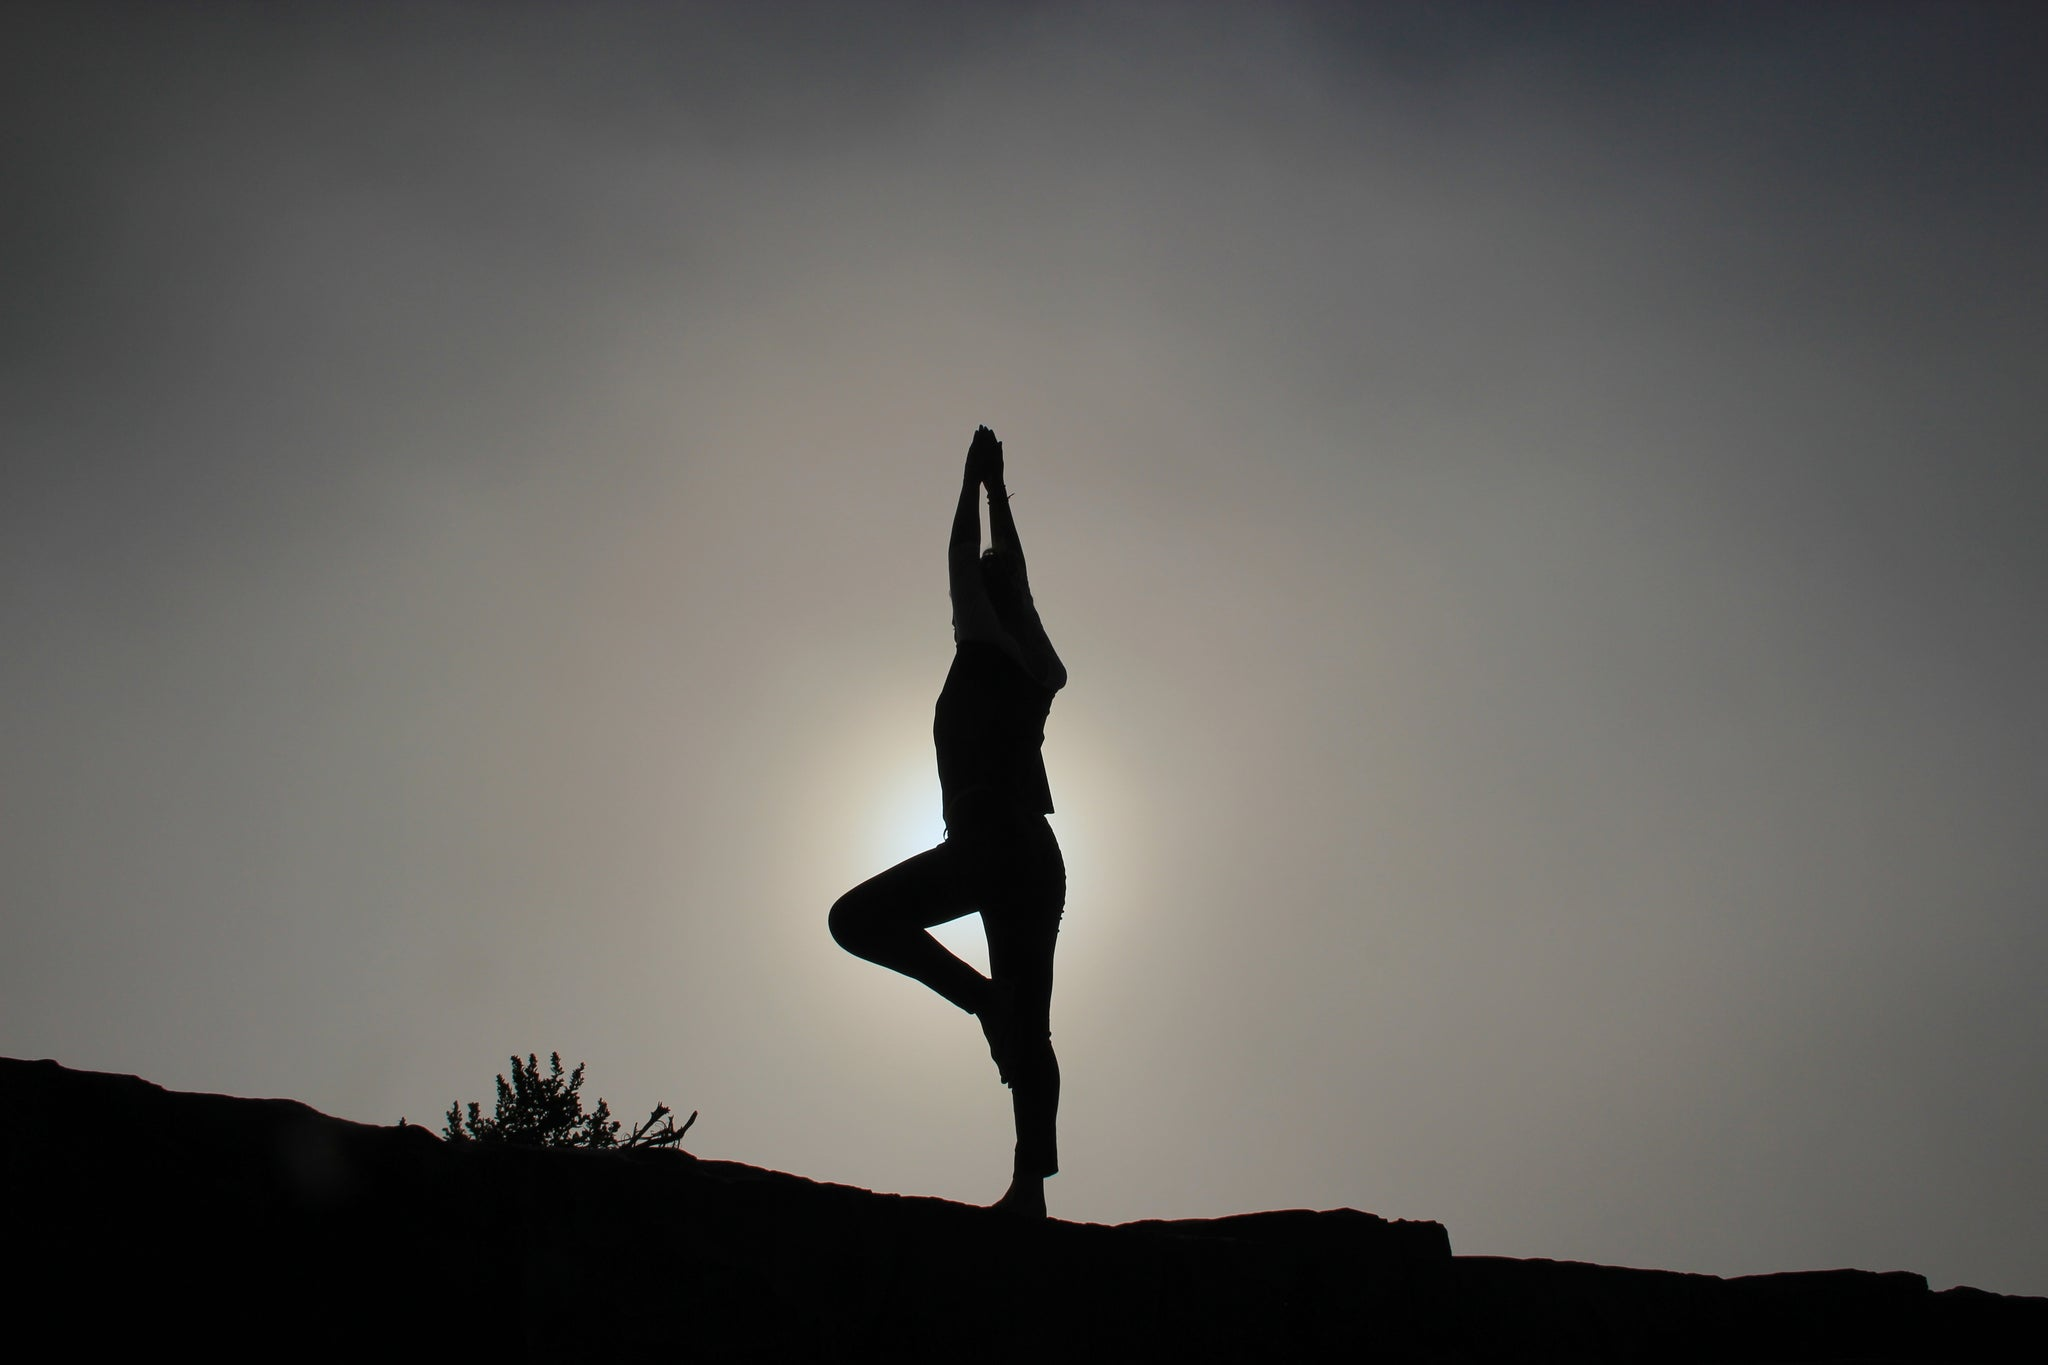 Reaching in yoga at sunset